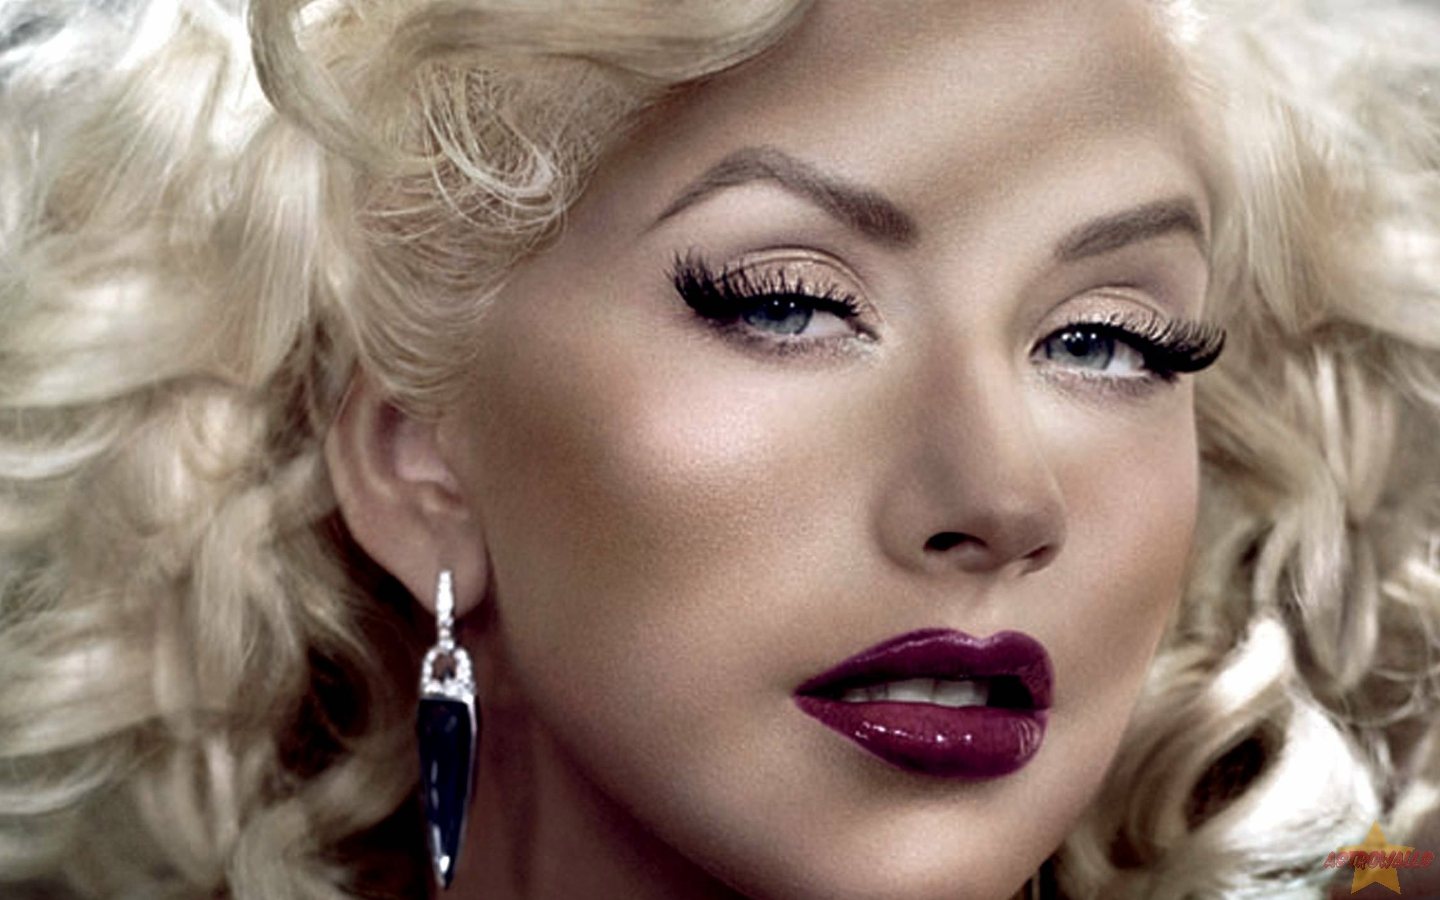 Christina Aguilera Wallpapers 1080p B3DK9R5   4USkY 1440x900